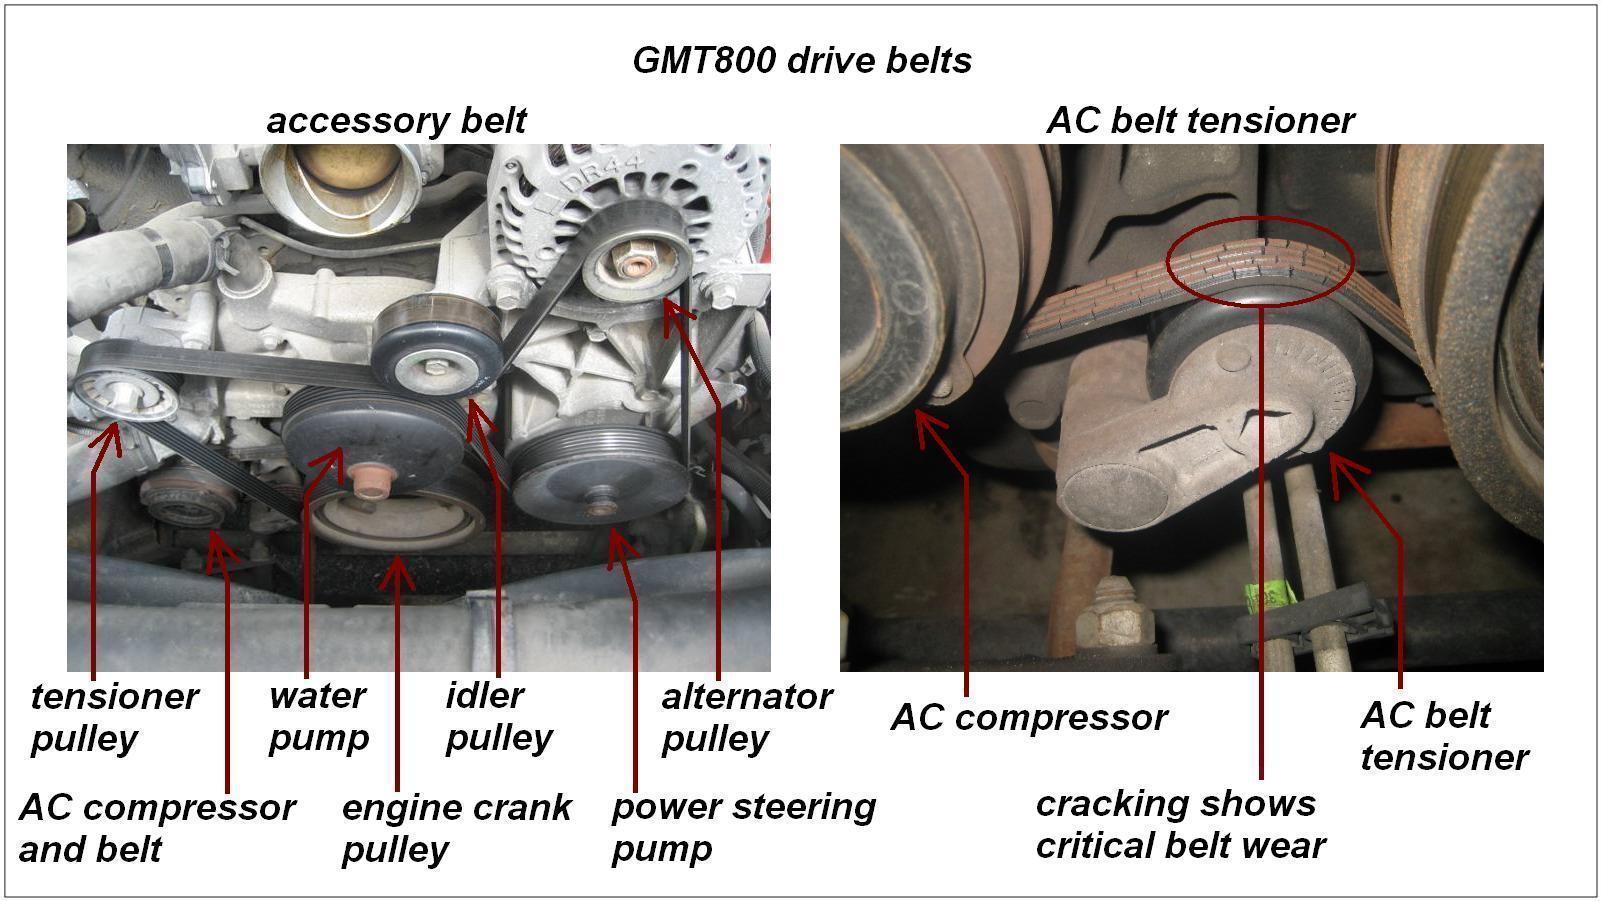 Chevrolet Silverado 1999 2013 How To Replace Idler And Tensioner Pulley 389857 as well 131 Aurora V6 additionally 3 8 Supercharger Belt Diagram together with 2003 Chevy Cavalier Fuel Filter additionally Chevrolet Equinox Fuel Filter. on 2002 chevy impala serpentine belt diagram